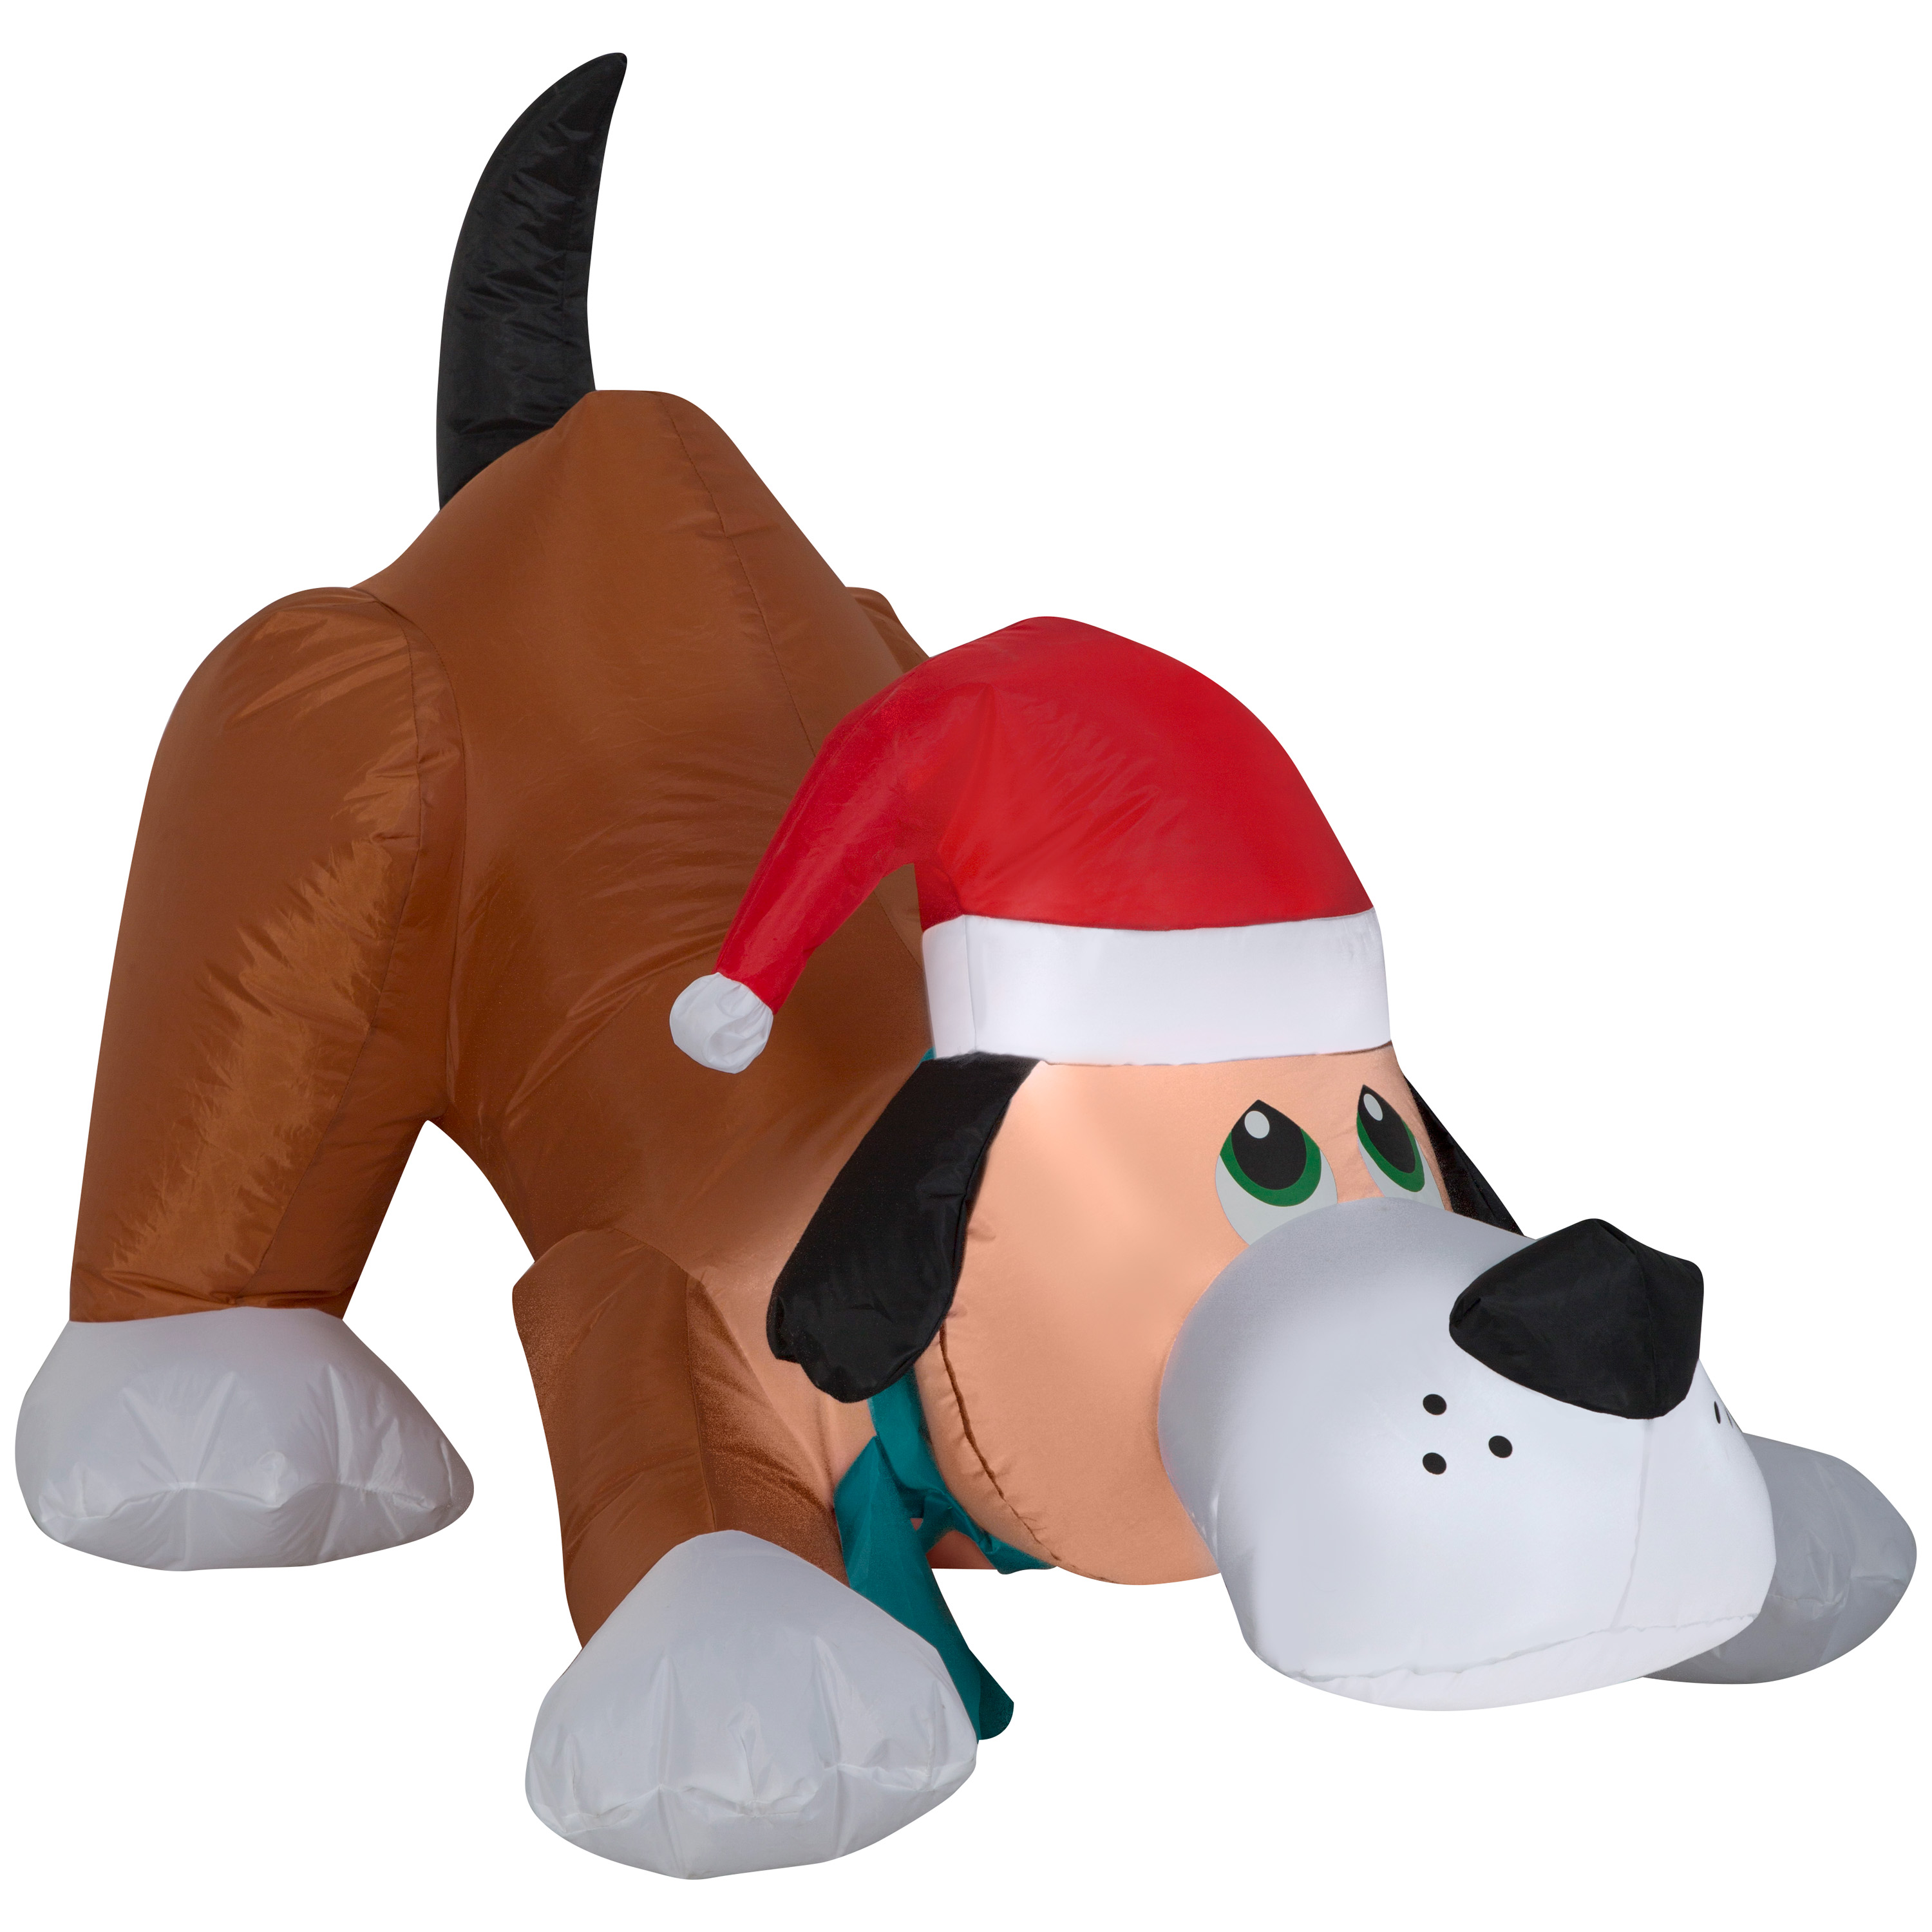 Image of Airblown Christmas Inflatable Playful Puppy 2.5' Tall